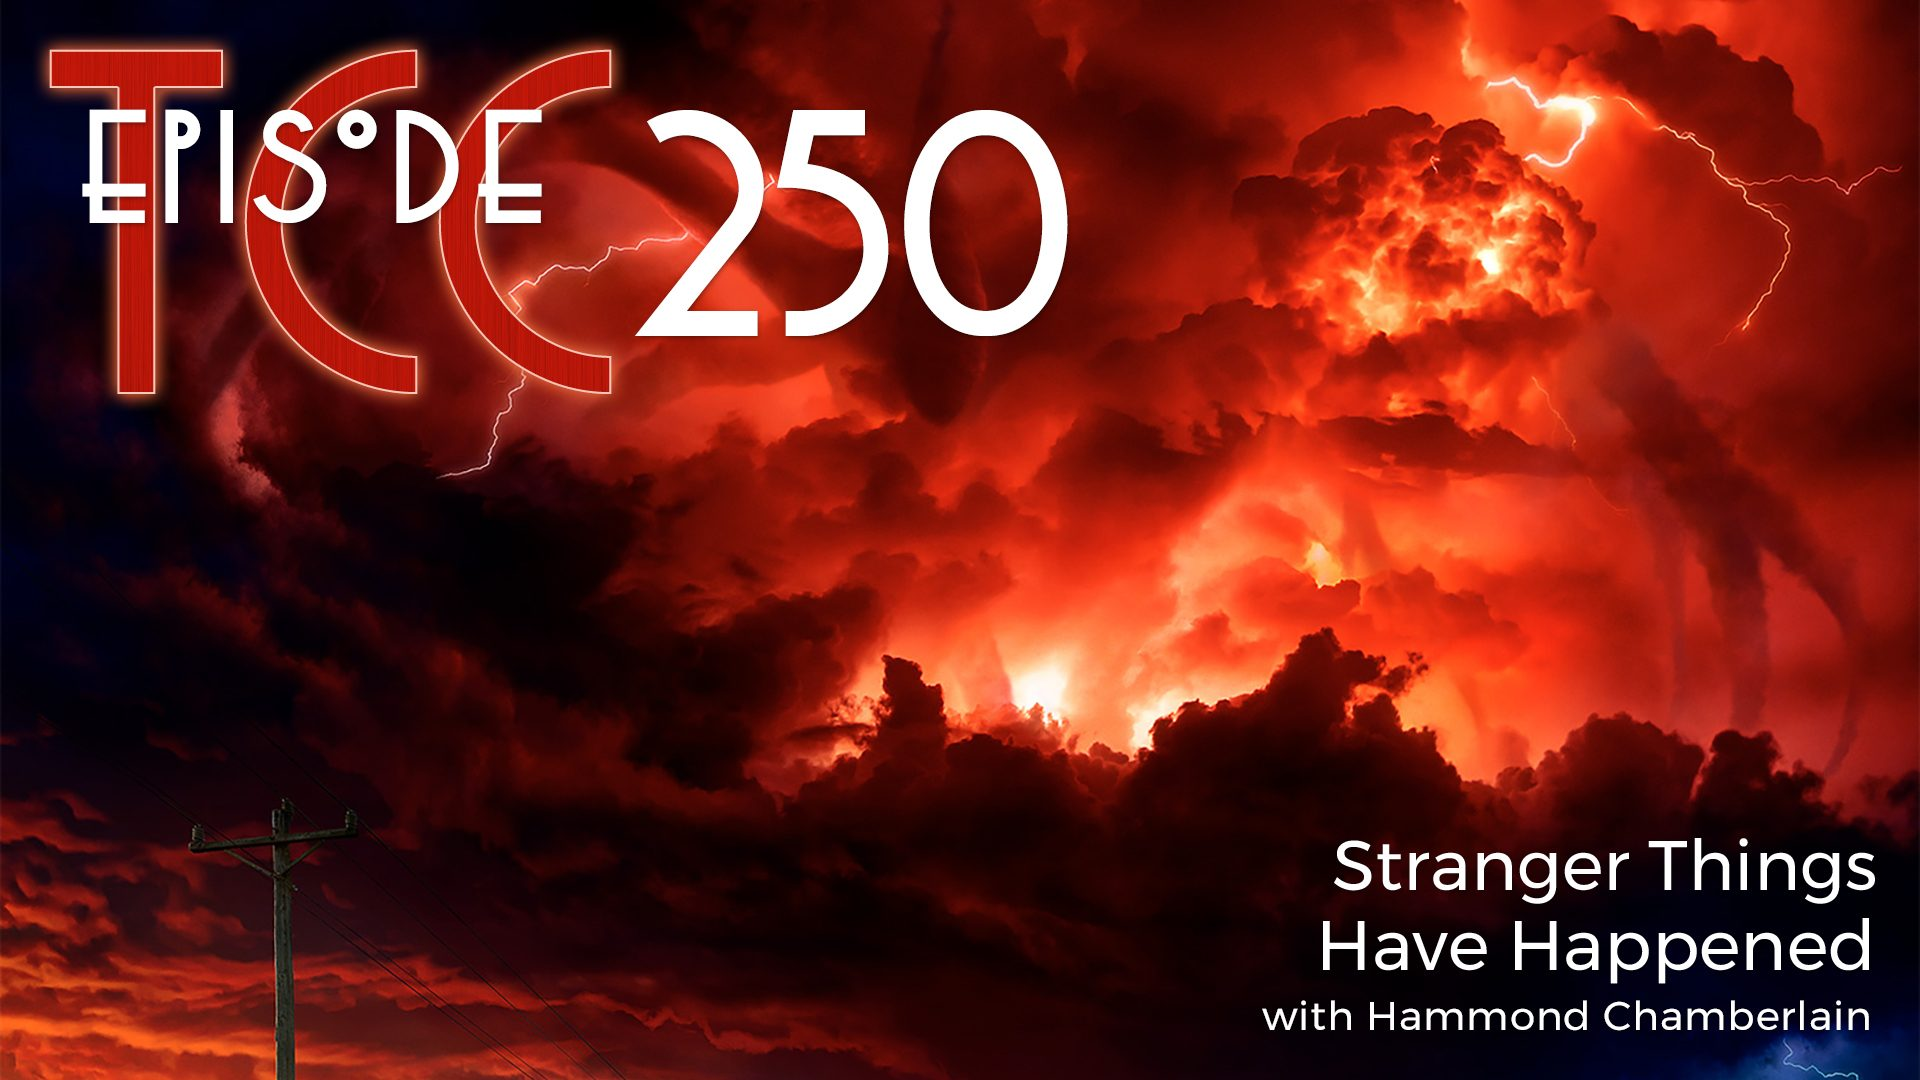 The Citadel Cafe 250: Stranger Things Have Happened